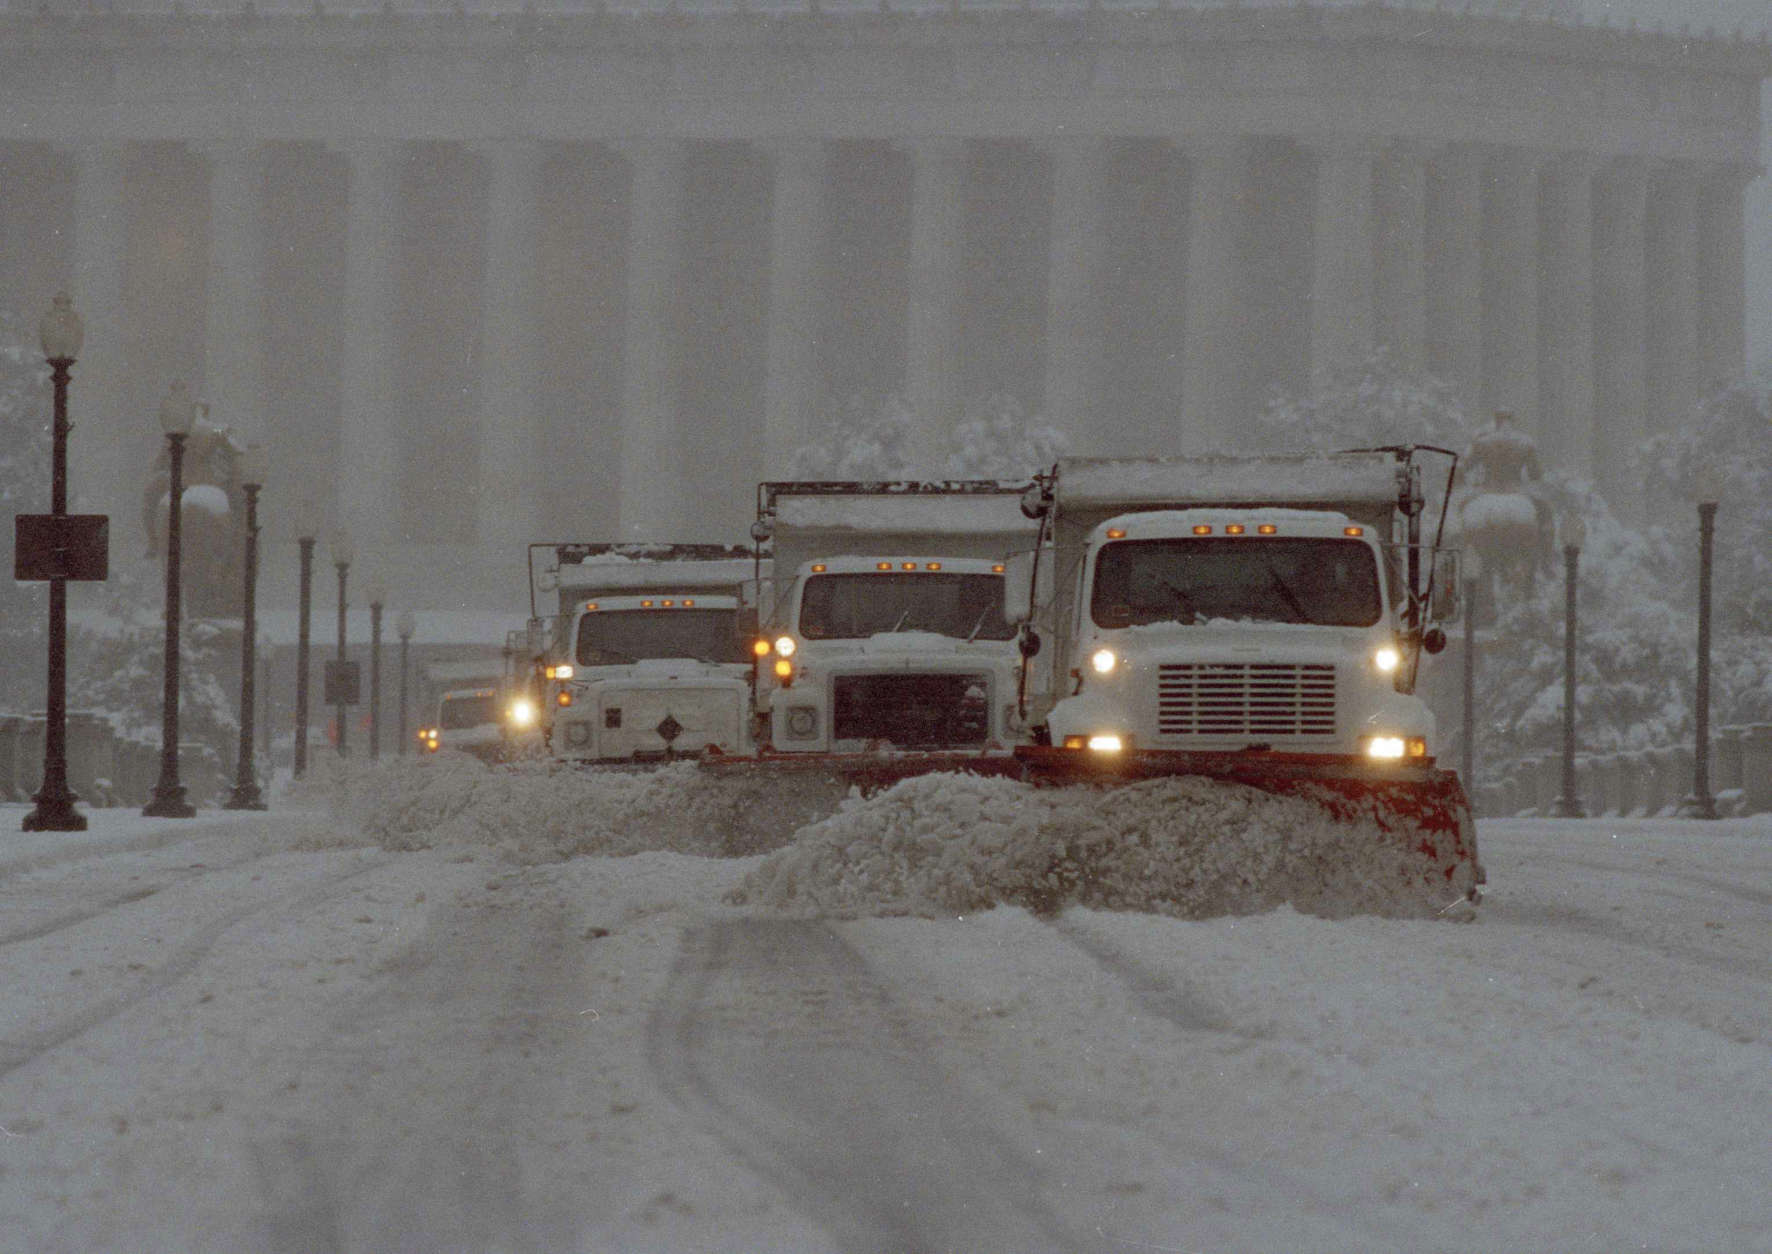 A line of trucks with snow plows push snow across the Memorial Bridge heading from Washington into Arlington, Va. as snow fell in the Washington area, March 13, 1993. The major storm battered the area snarling roads and closing museums. The Lincoln Memorial is in the background. (AP Photo/Mark Wilson)